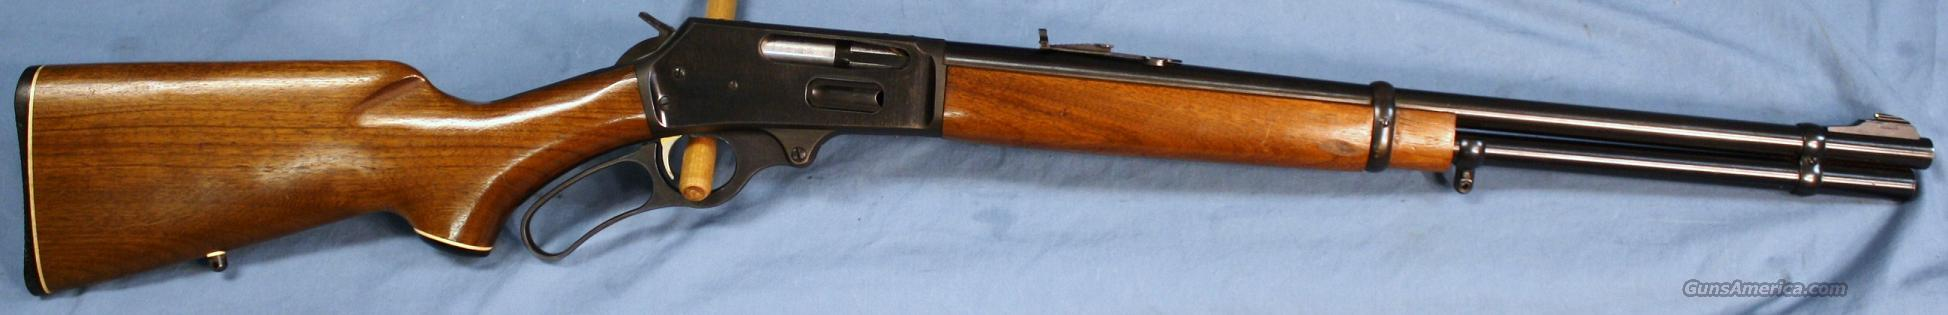 Marlin Model 336 Lever Action Rifle .30-30 Win Made 1972  Guns > Rifles > Marlin Rifles > Modern > Lever Action